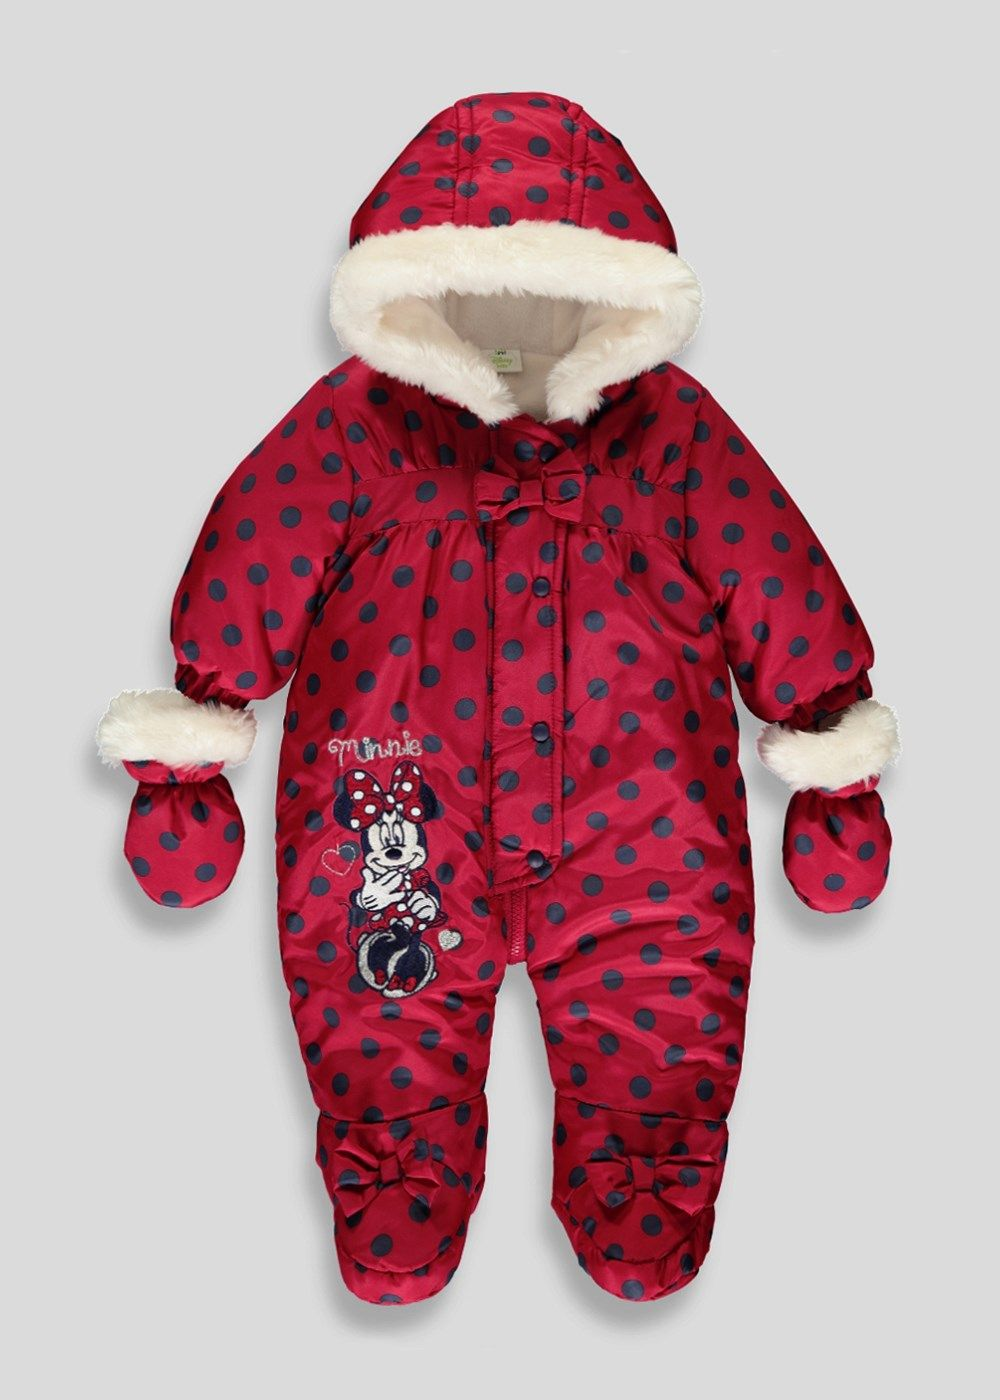 ce0a2d2b5160 Girls Disney Minnie Mouse Snowsuit (Newborn-18mths) - Matalan ...